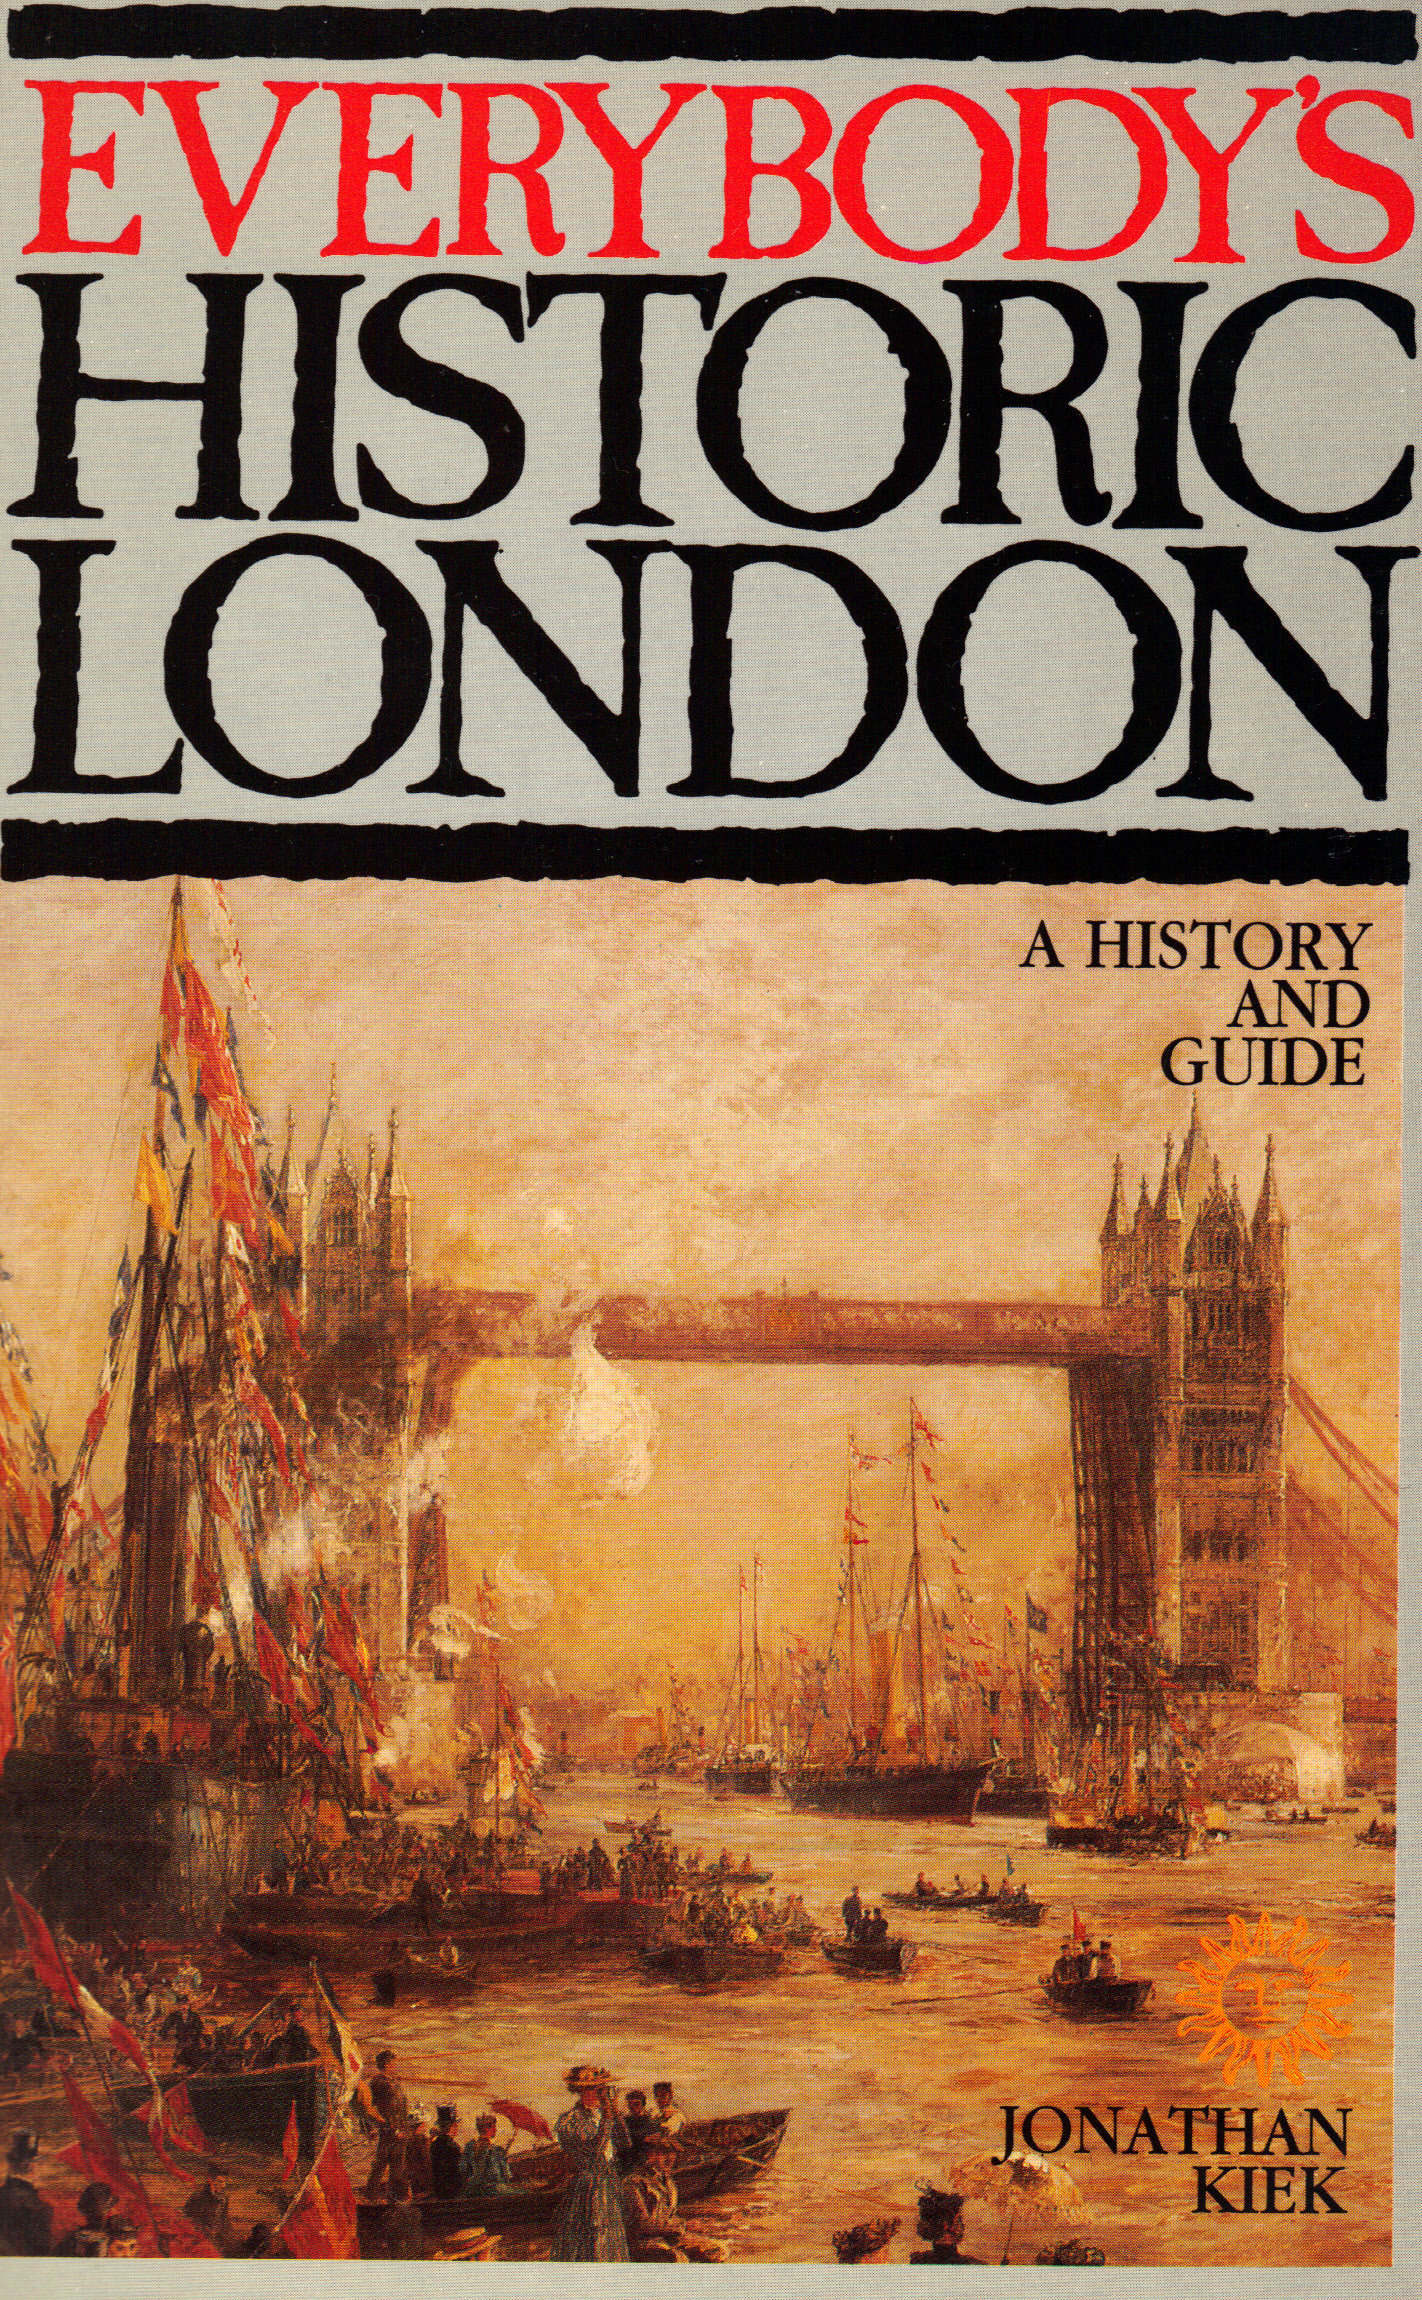 Image for EVERYBODY'S HISTORIC LONDON